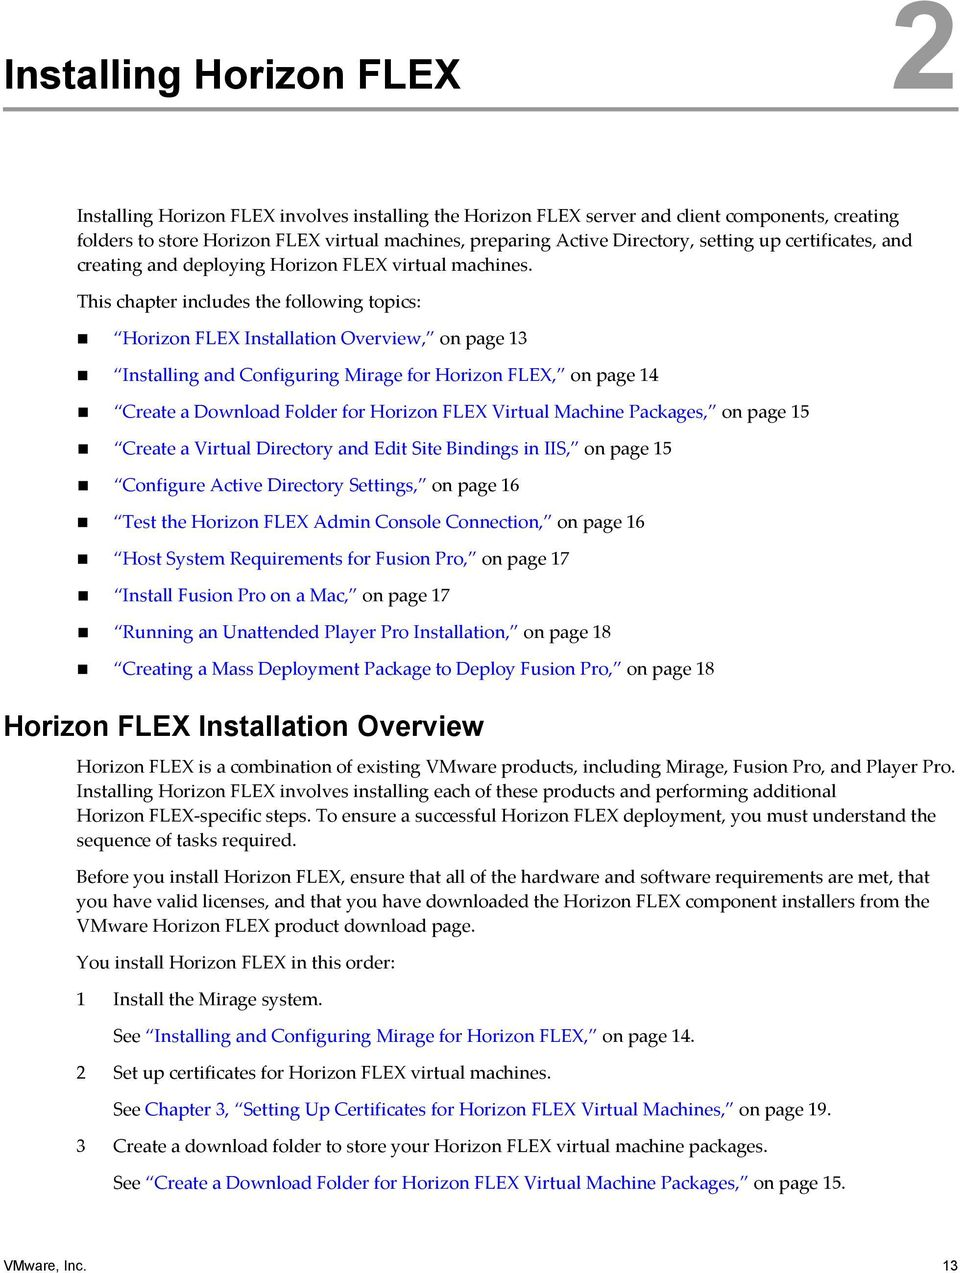 This hpter inludes the following topis: Horizon FLEX Instlltion Overview, on pge 13 Instlling nd Configuring Mirge for Horizon FLEX, on pge 14 Crete Downlod Folder for Horizon FLEX Virtul Mhine